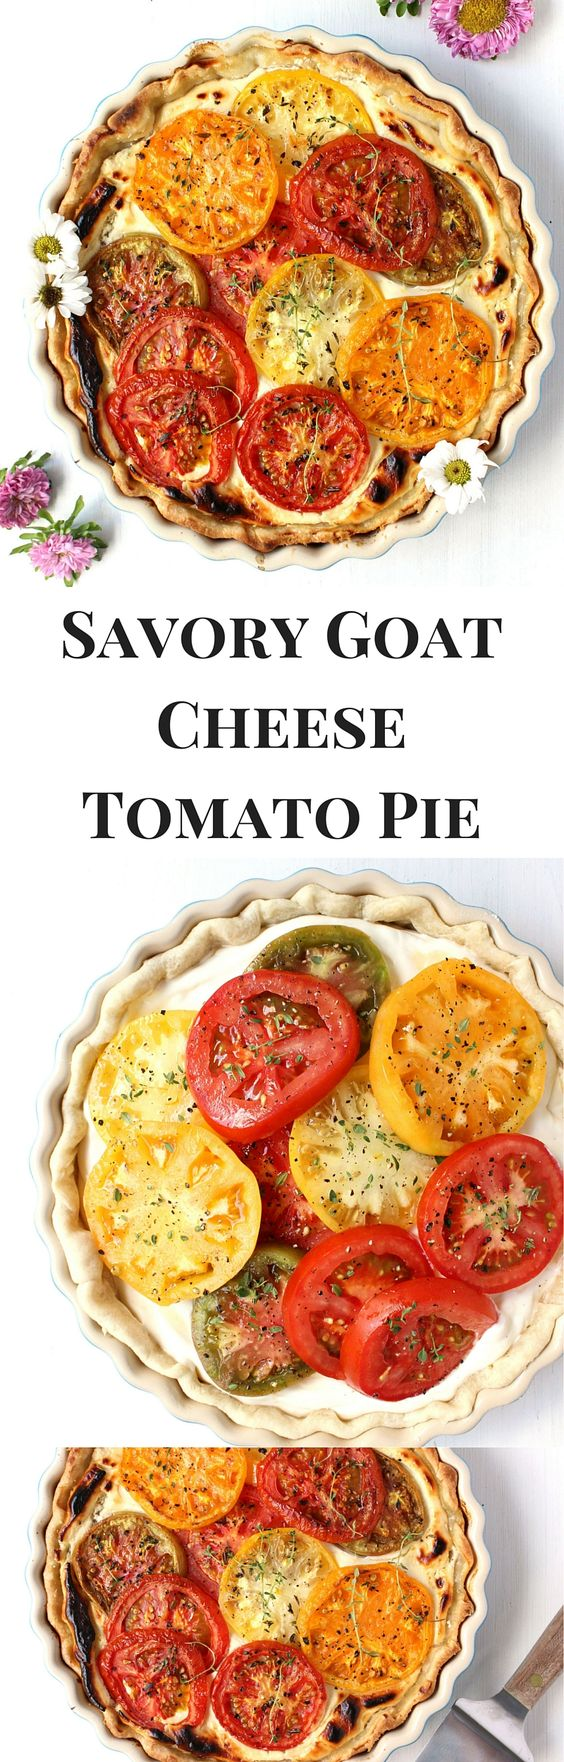 tomatoes!! this Savory Goat Cheese Tomato Pie is fluffy, sweet, savory ...